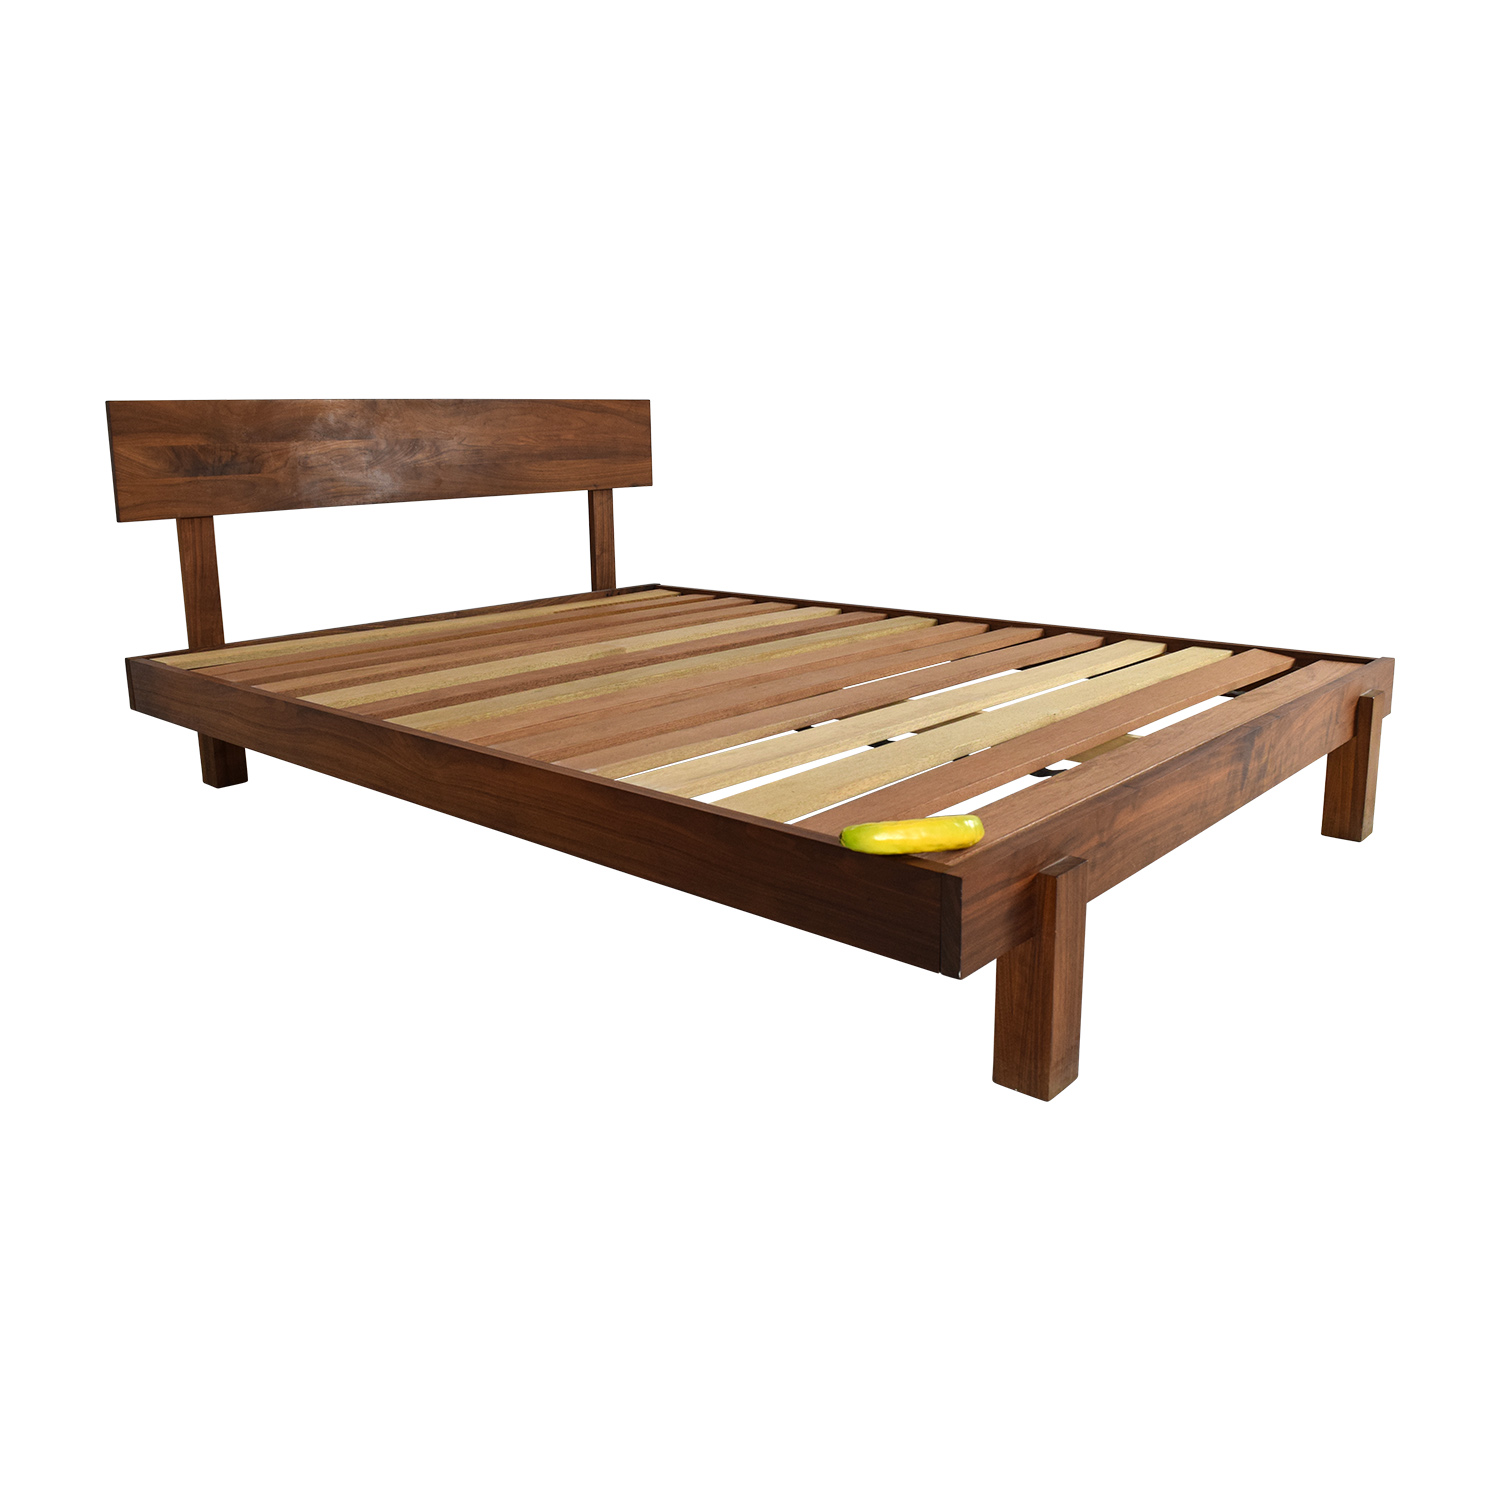 room and board anders queen size bed for sale